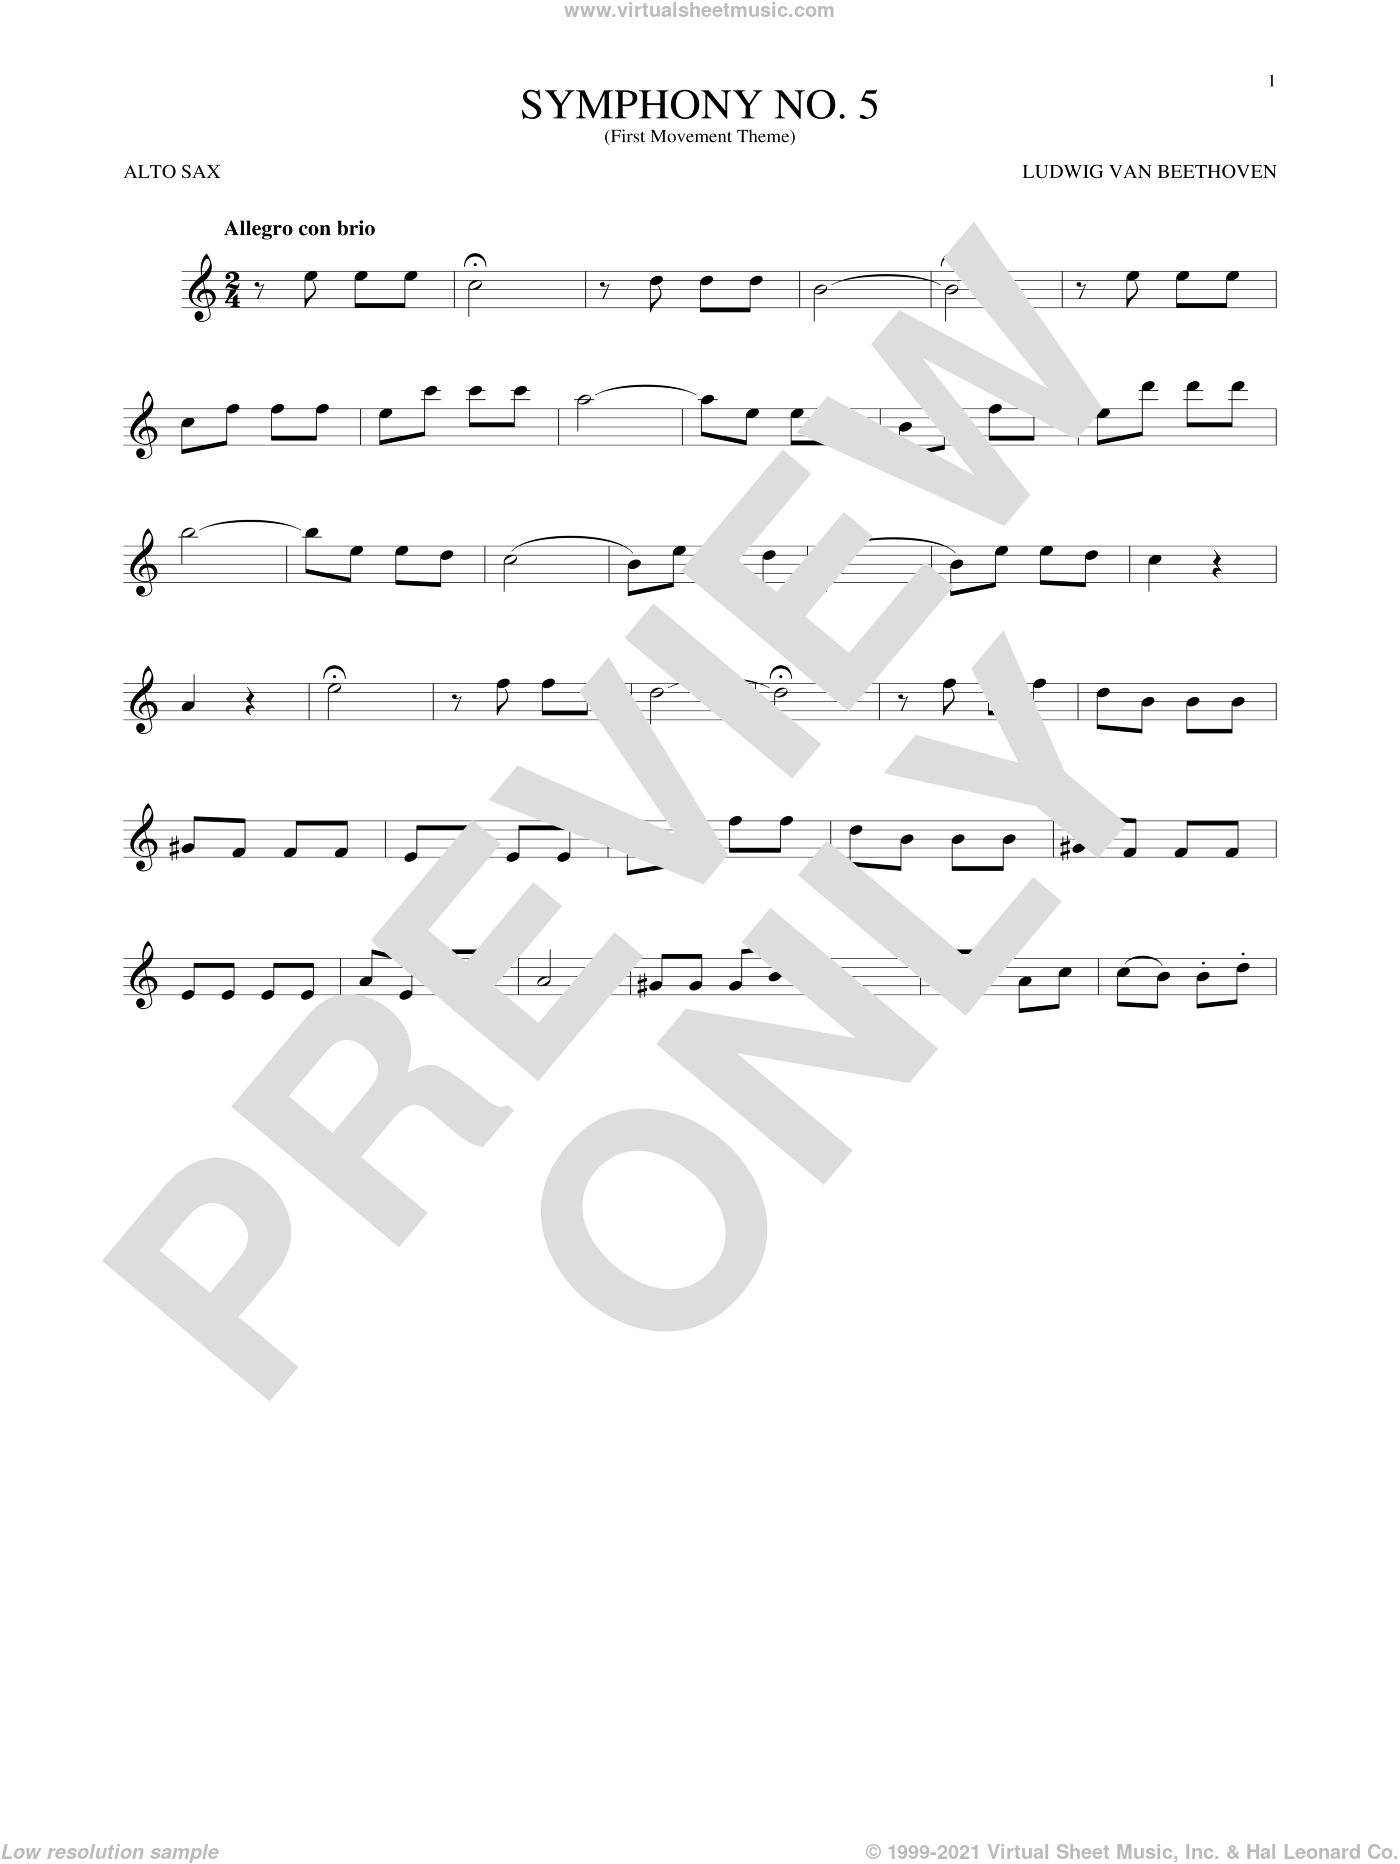 Symphony No. 5 In C Minor, First Movement Excerpt sheet music for alto saxophone solo by Ludwig van Beethoven, classical score, intermediate skill level